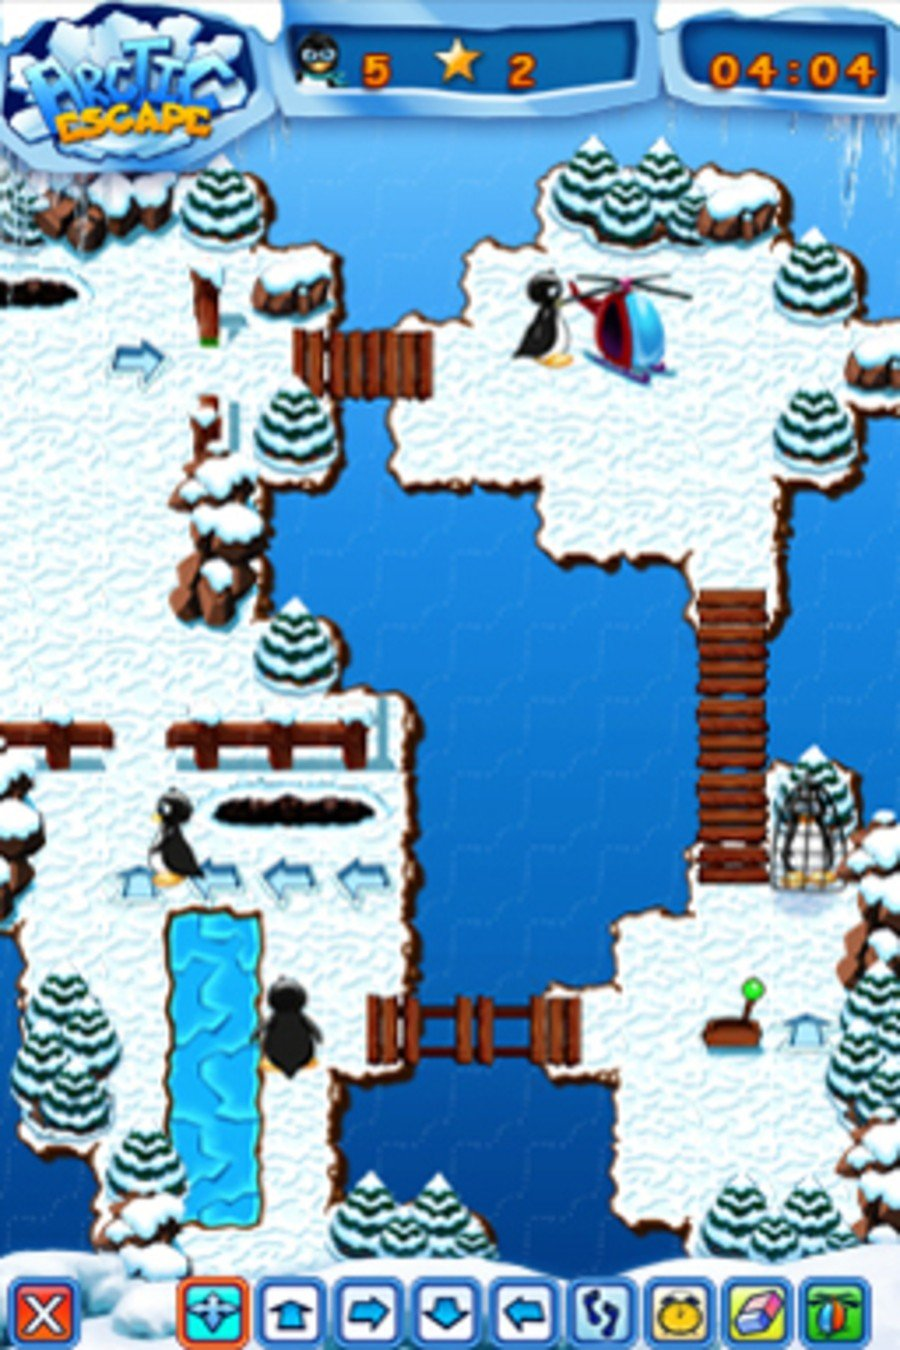 Arctic Escape Screenshot